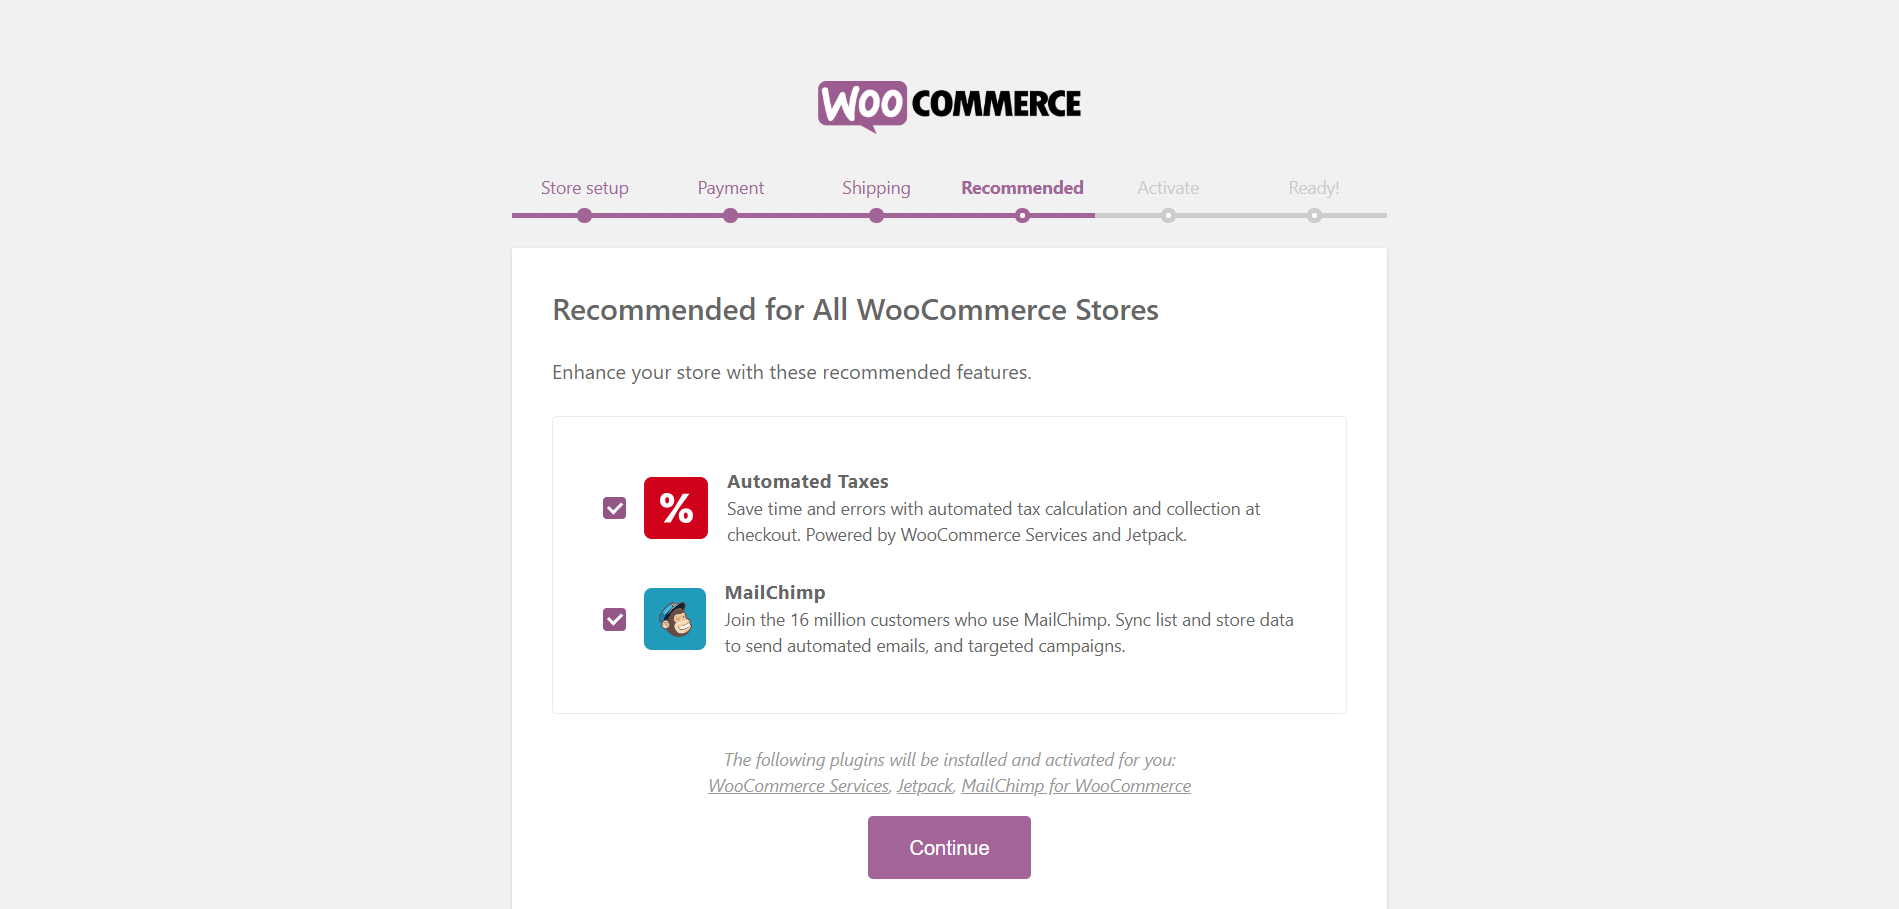 Configuring WooCommerce 3